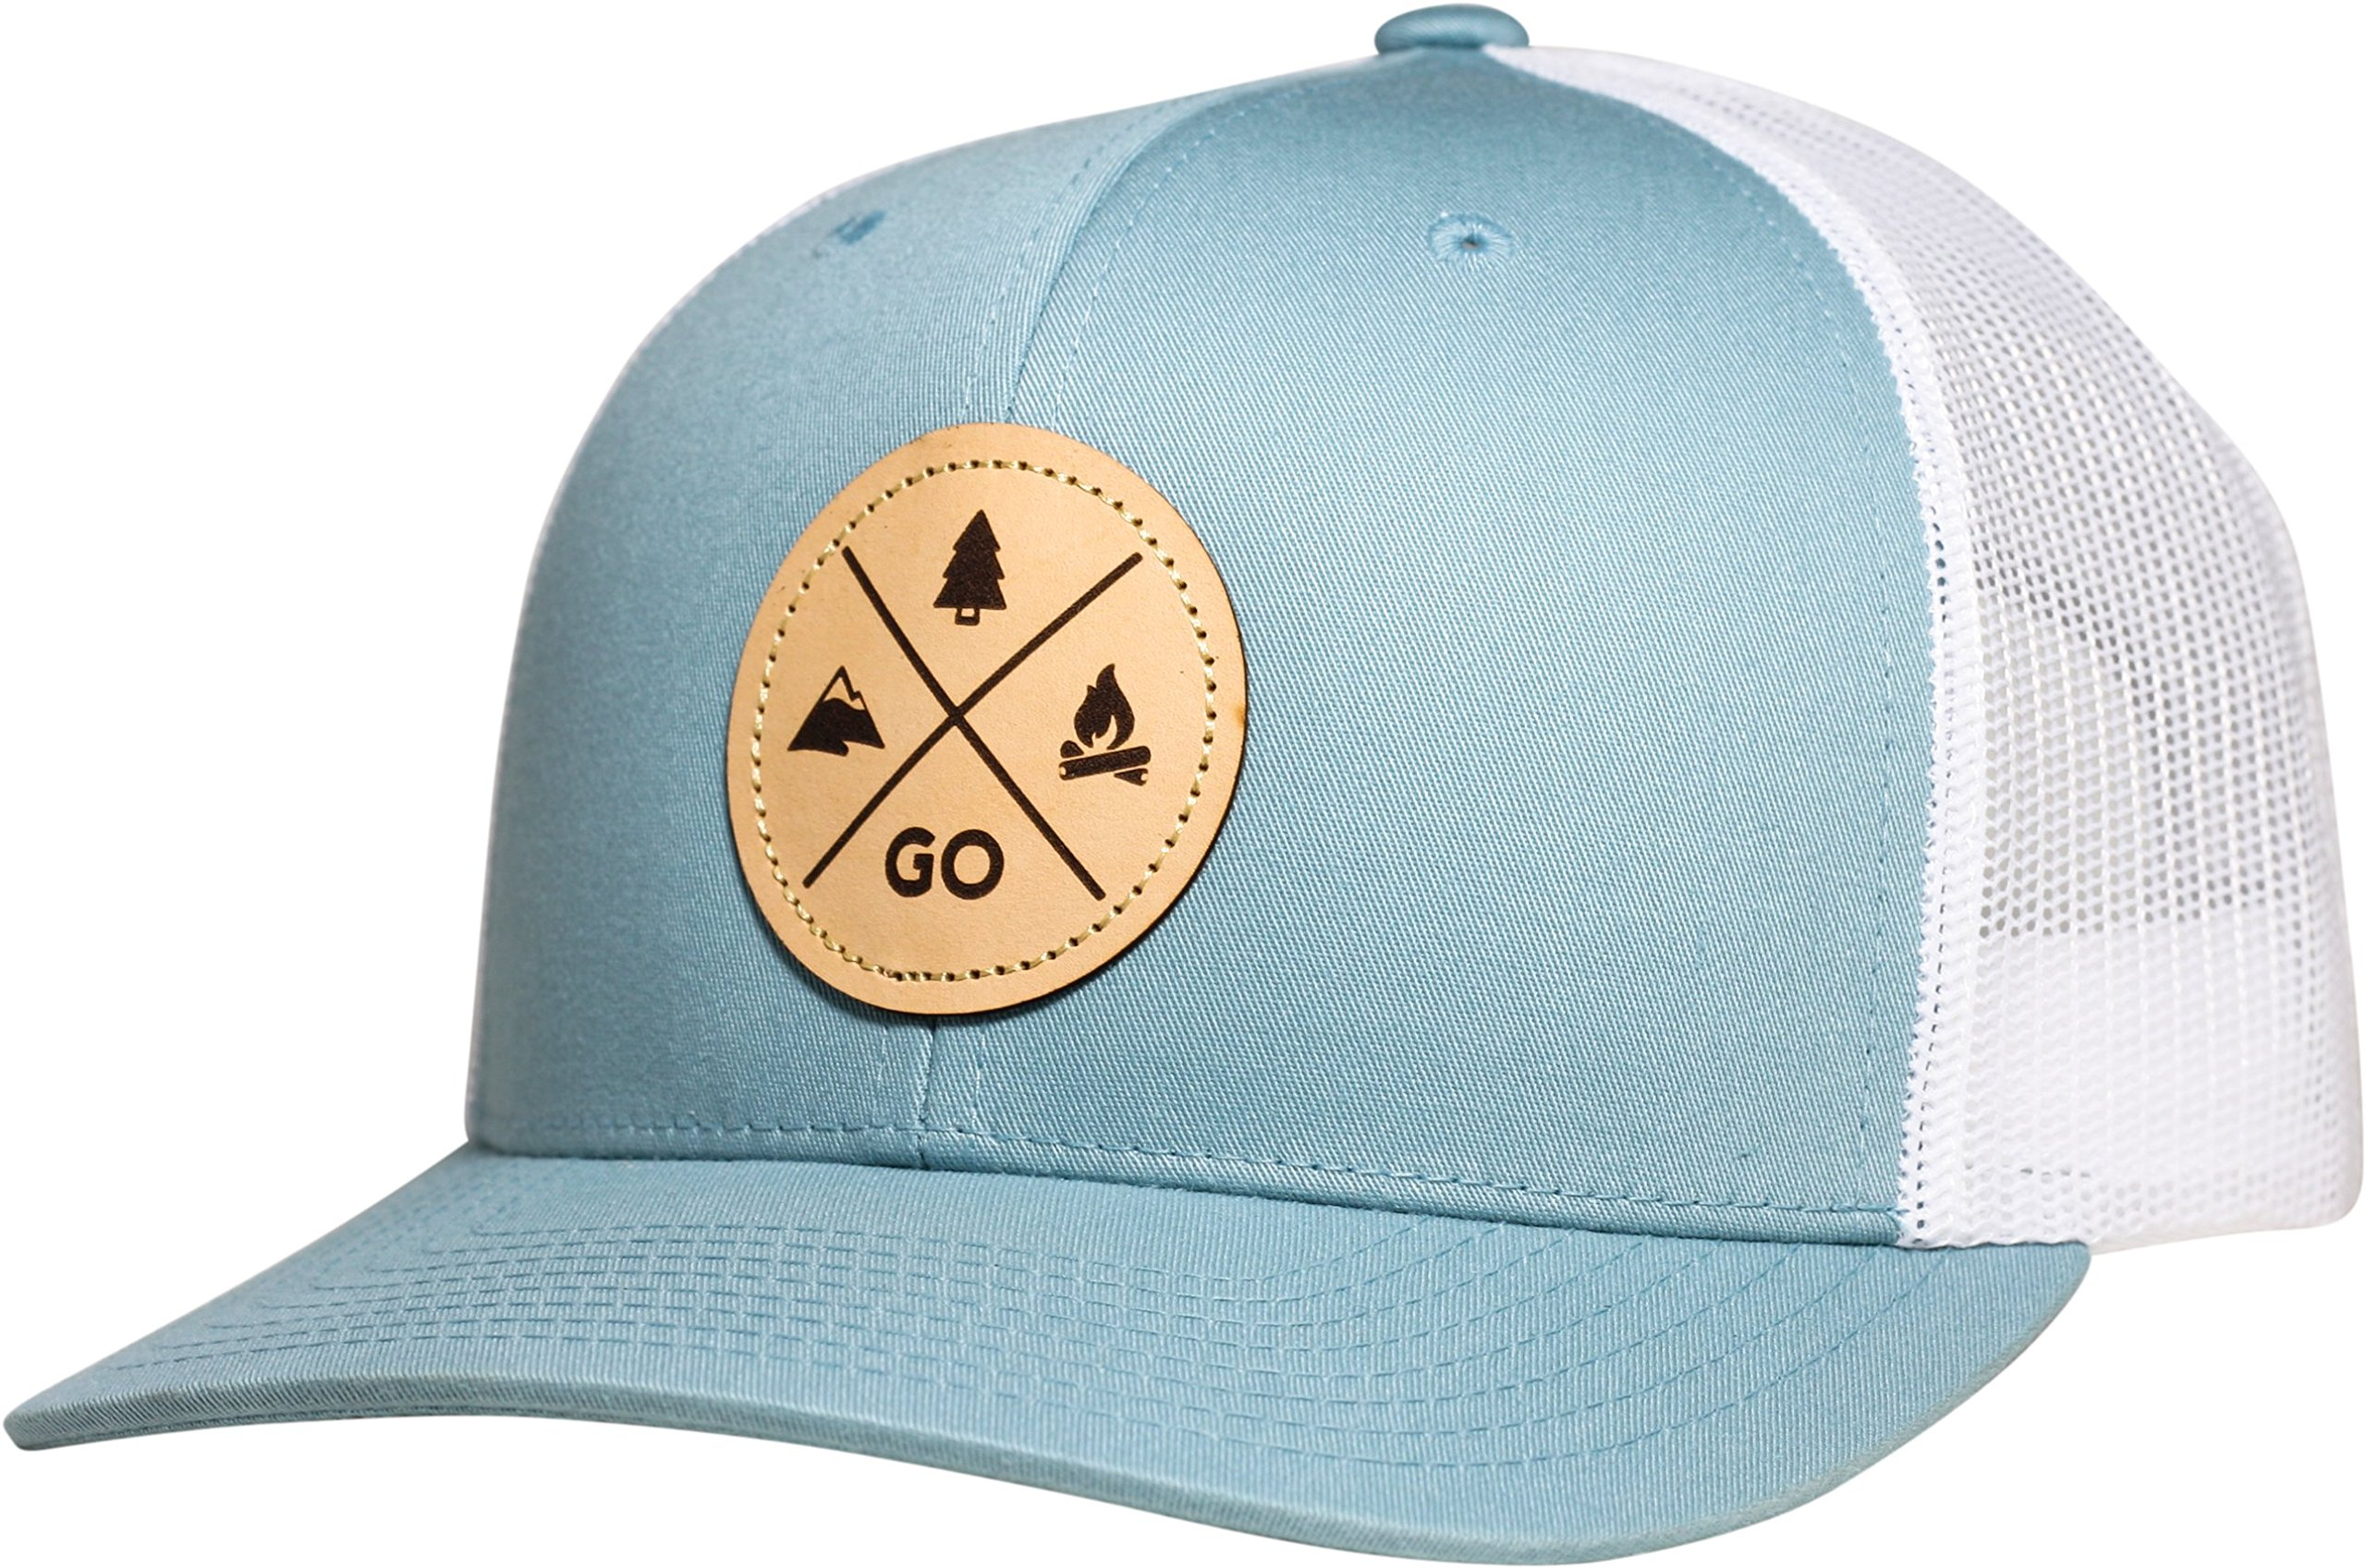 Galleon - Lindo Trucker Hat - GO Outdoors (Sky Blue) b0bb358a383